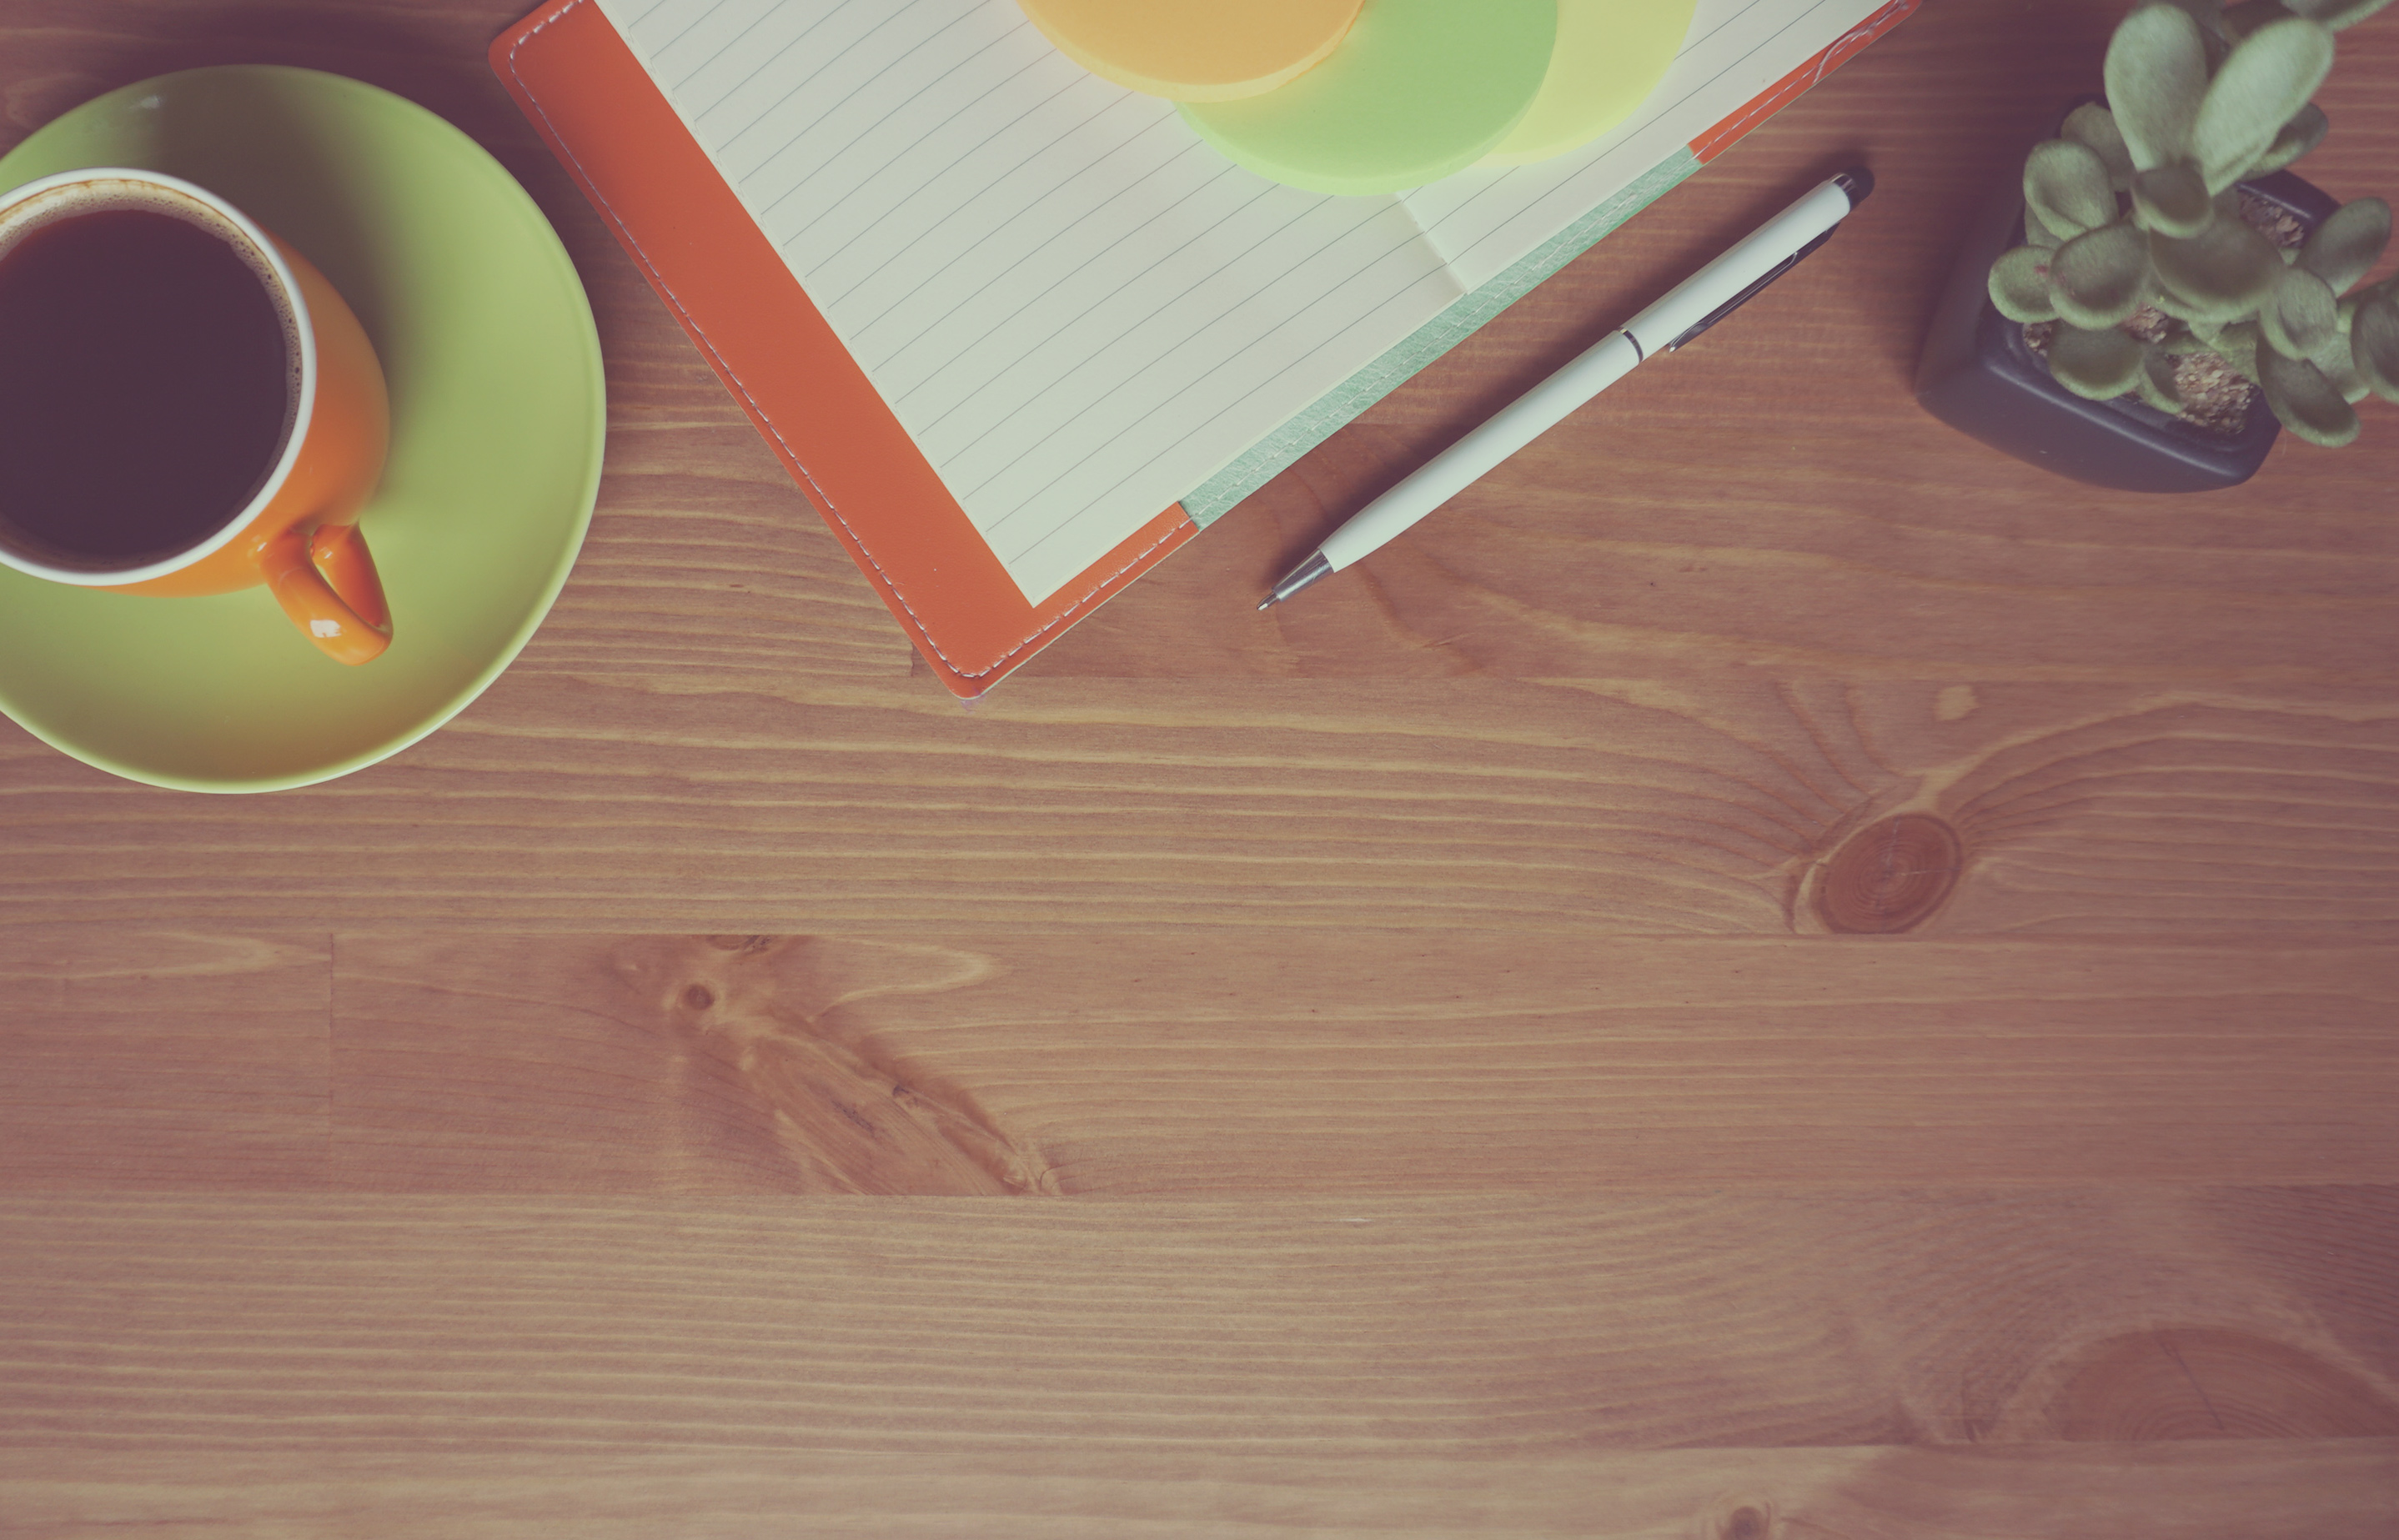 Open orange notebook on wooden table. Notebook is placed among a coffee cup, pen, and succulent.